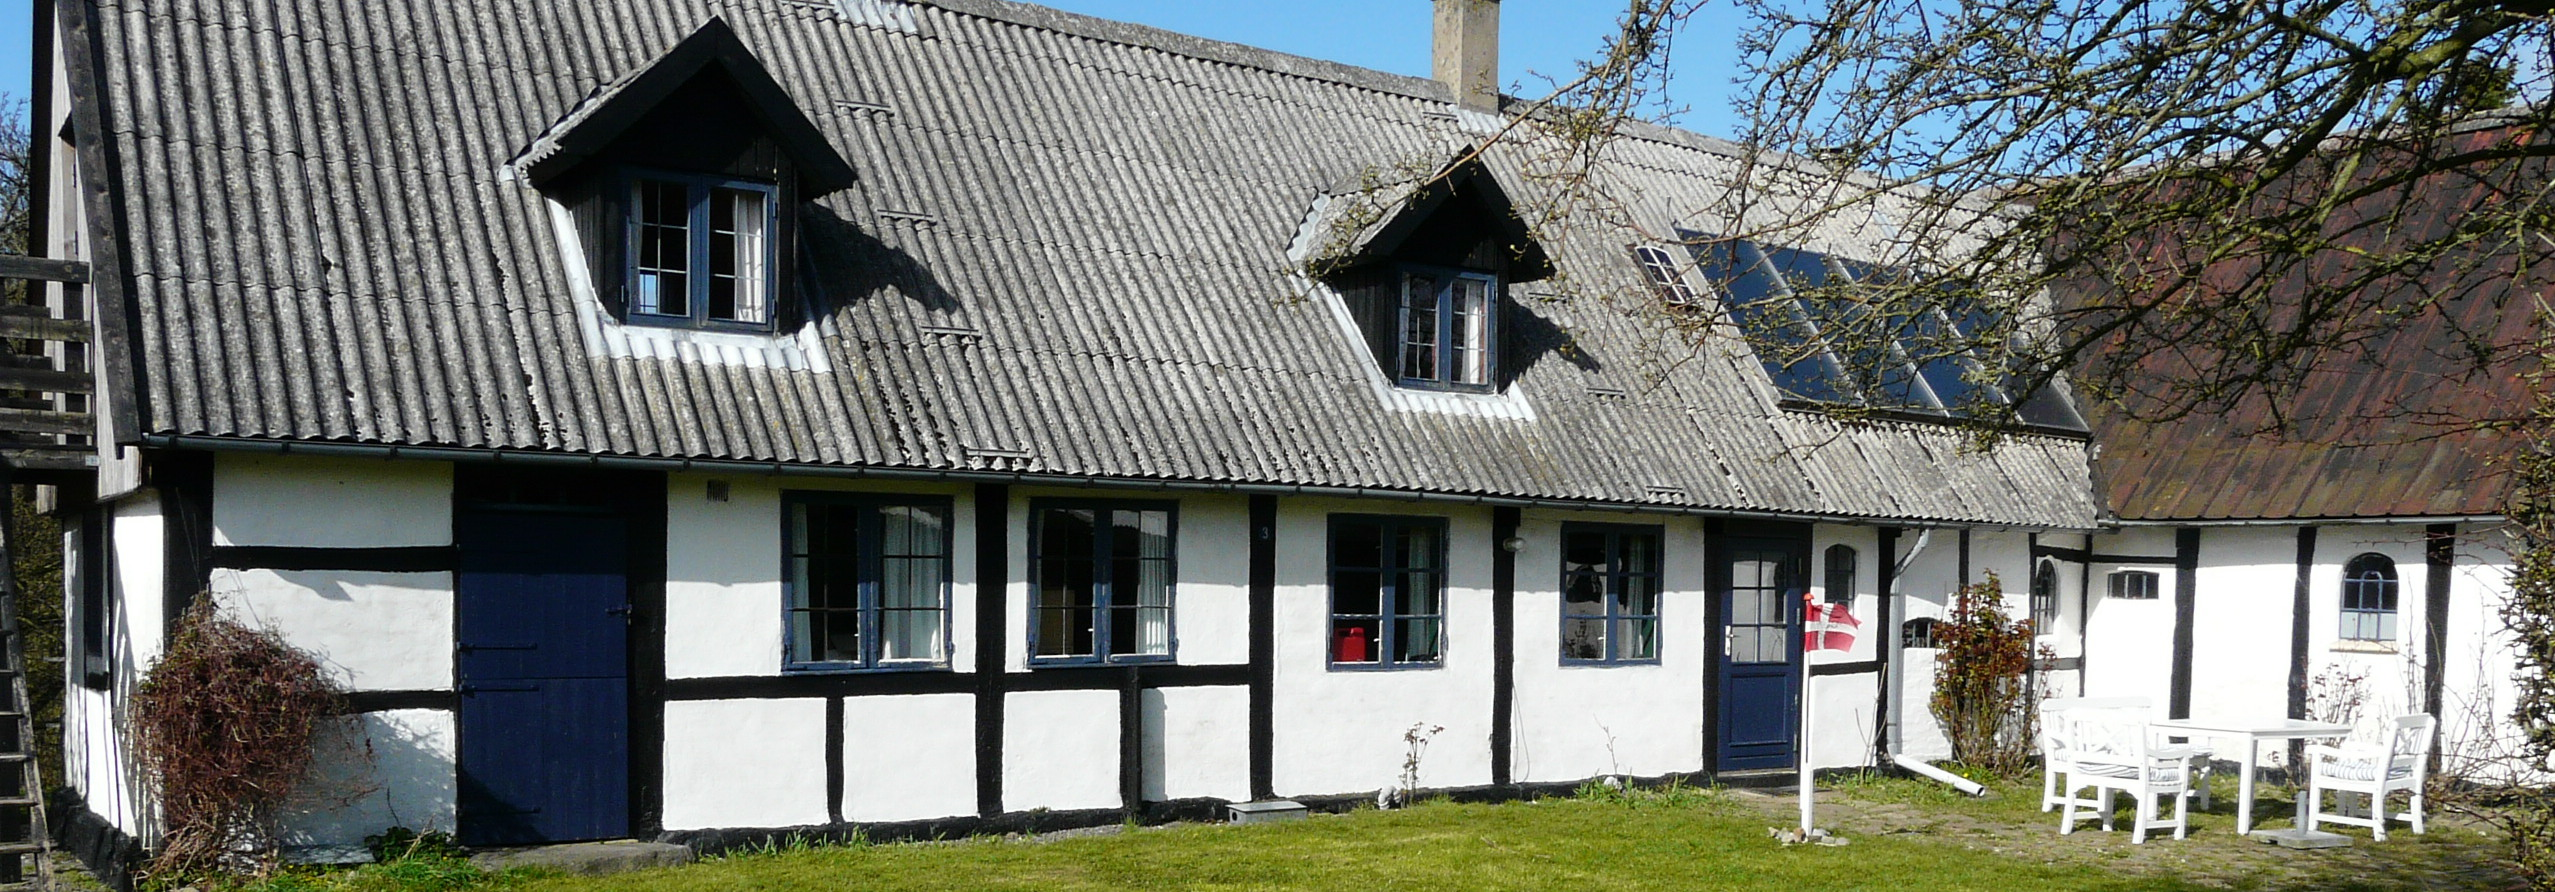 The Stavehøl guesthouse